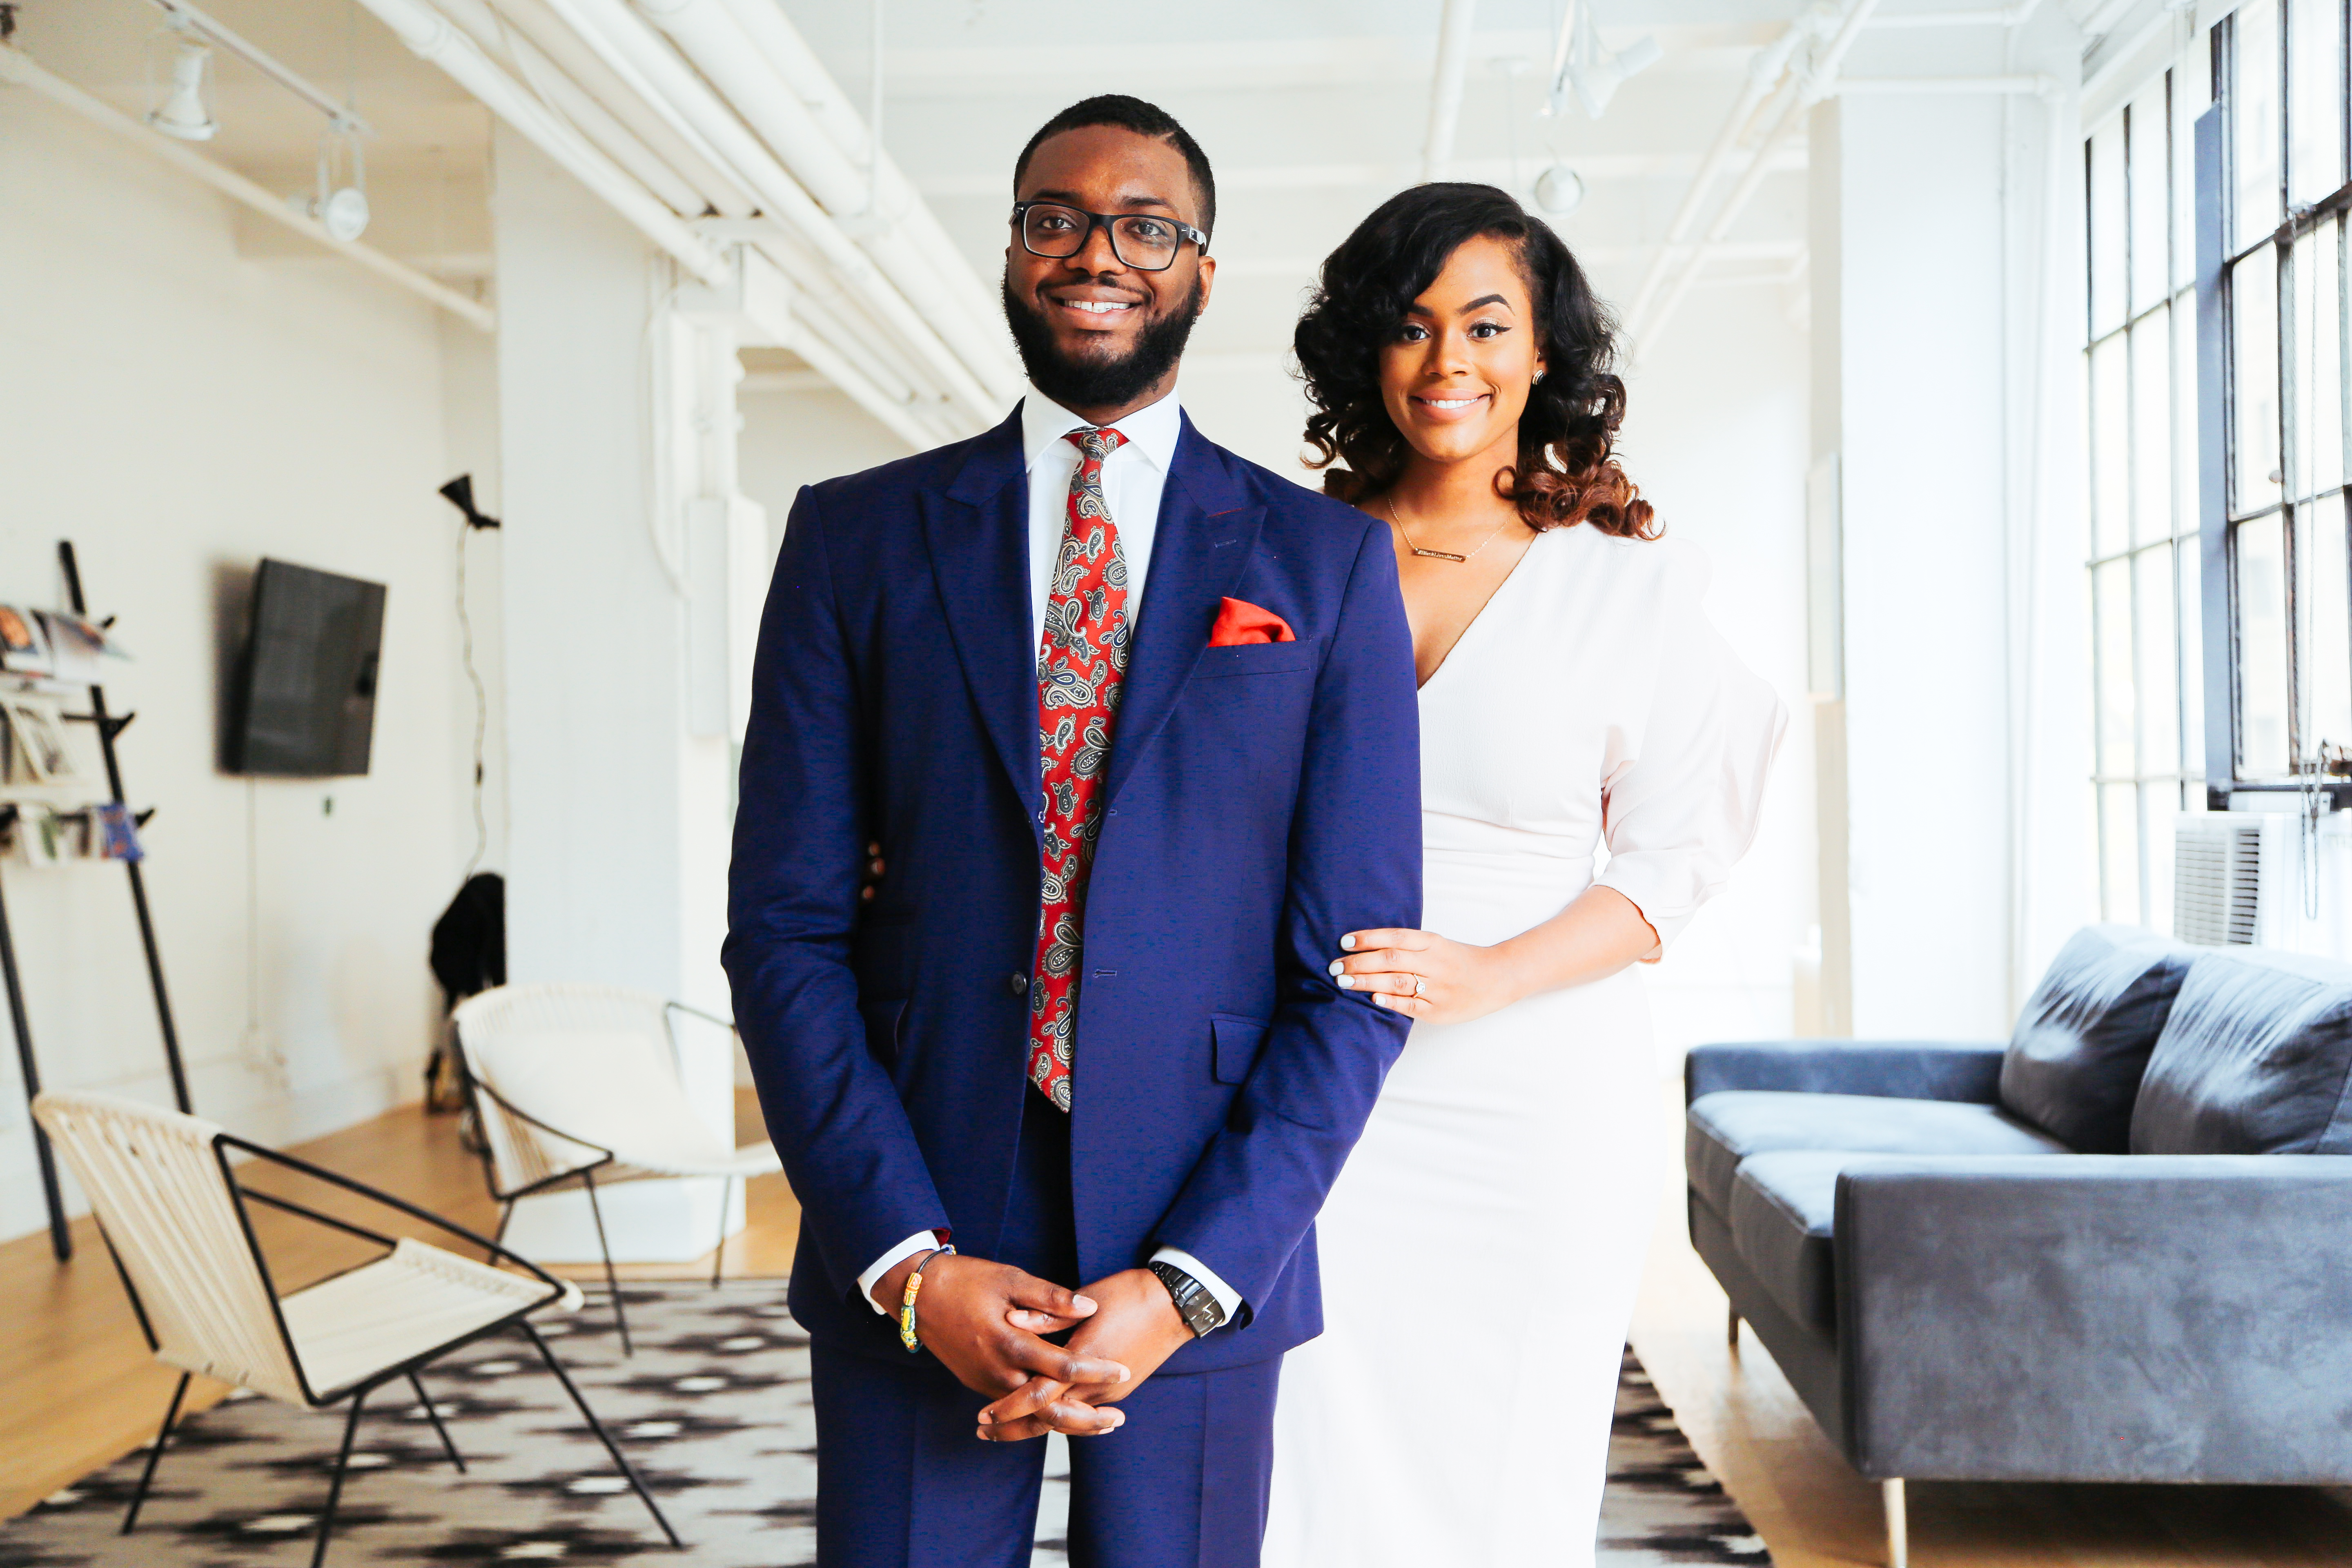 chic black couple engagement photos nyc